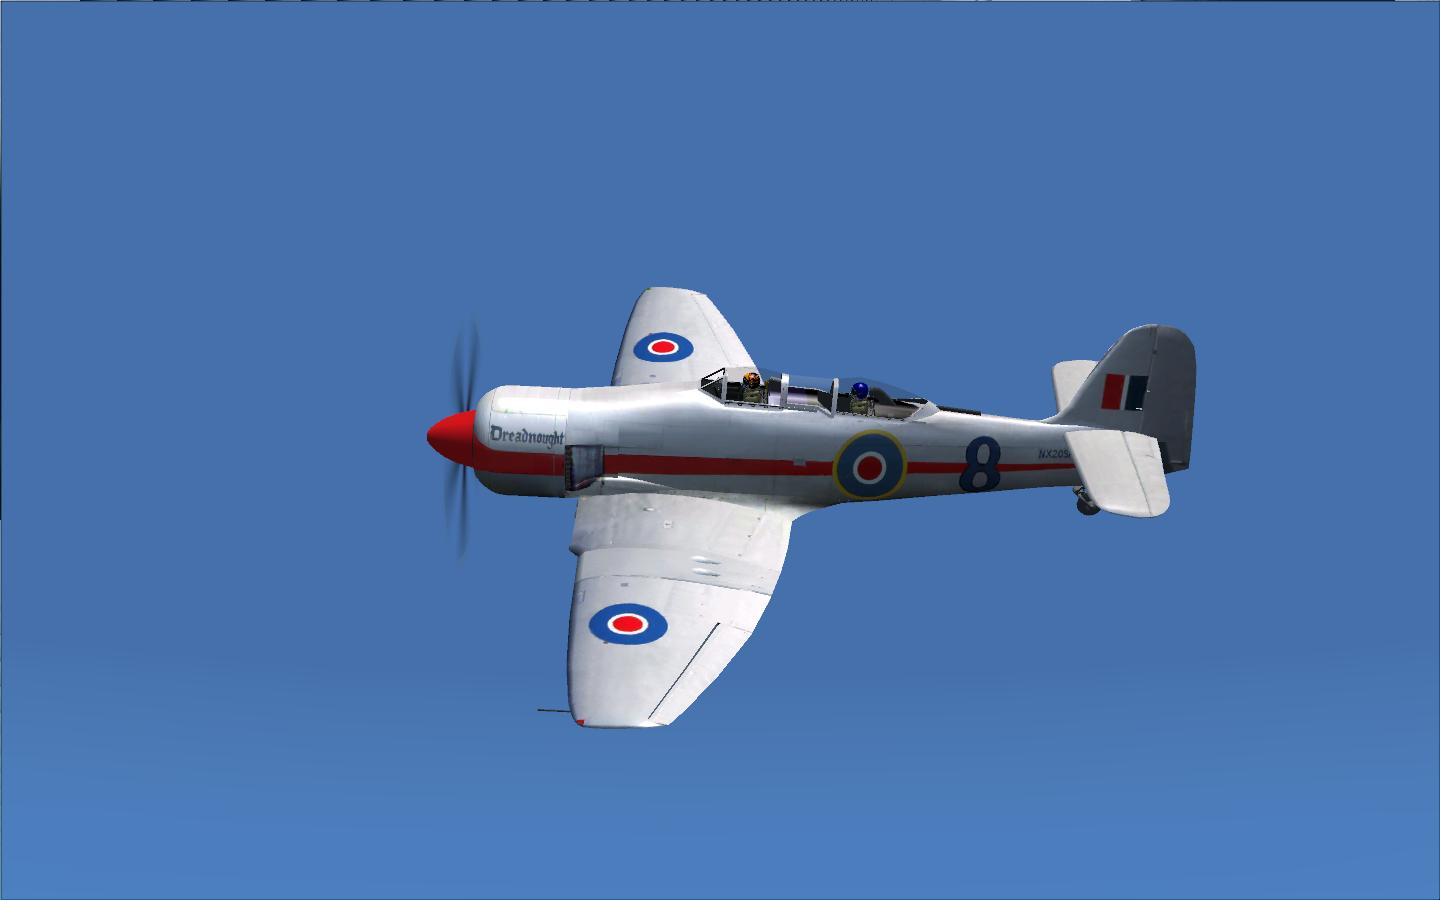 FS 2004 Hawker Sea Fury Dreadnought